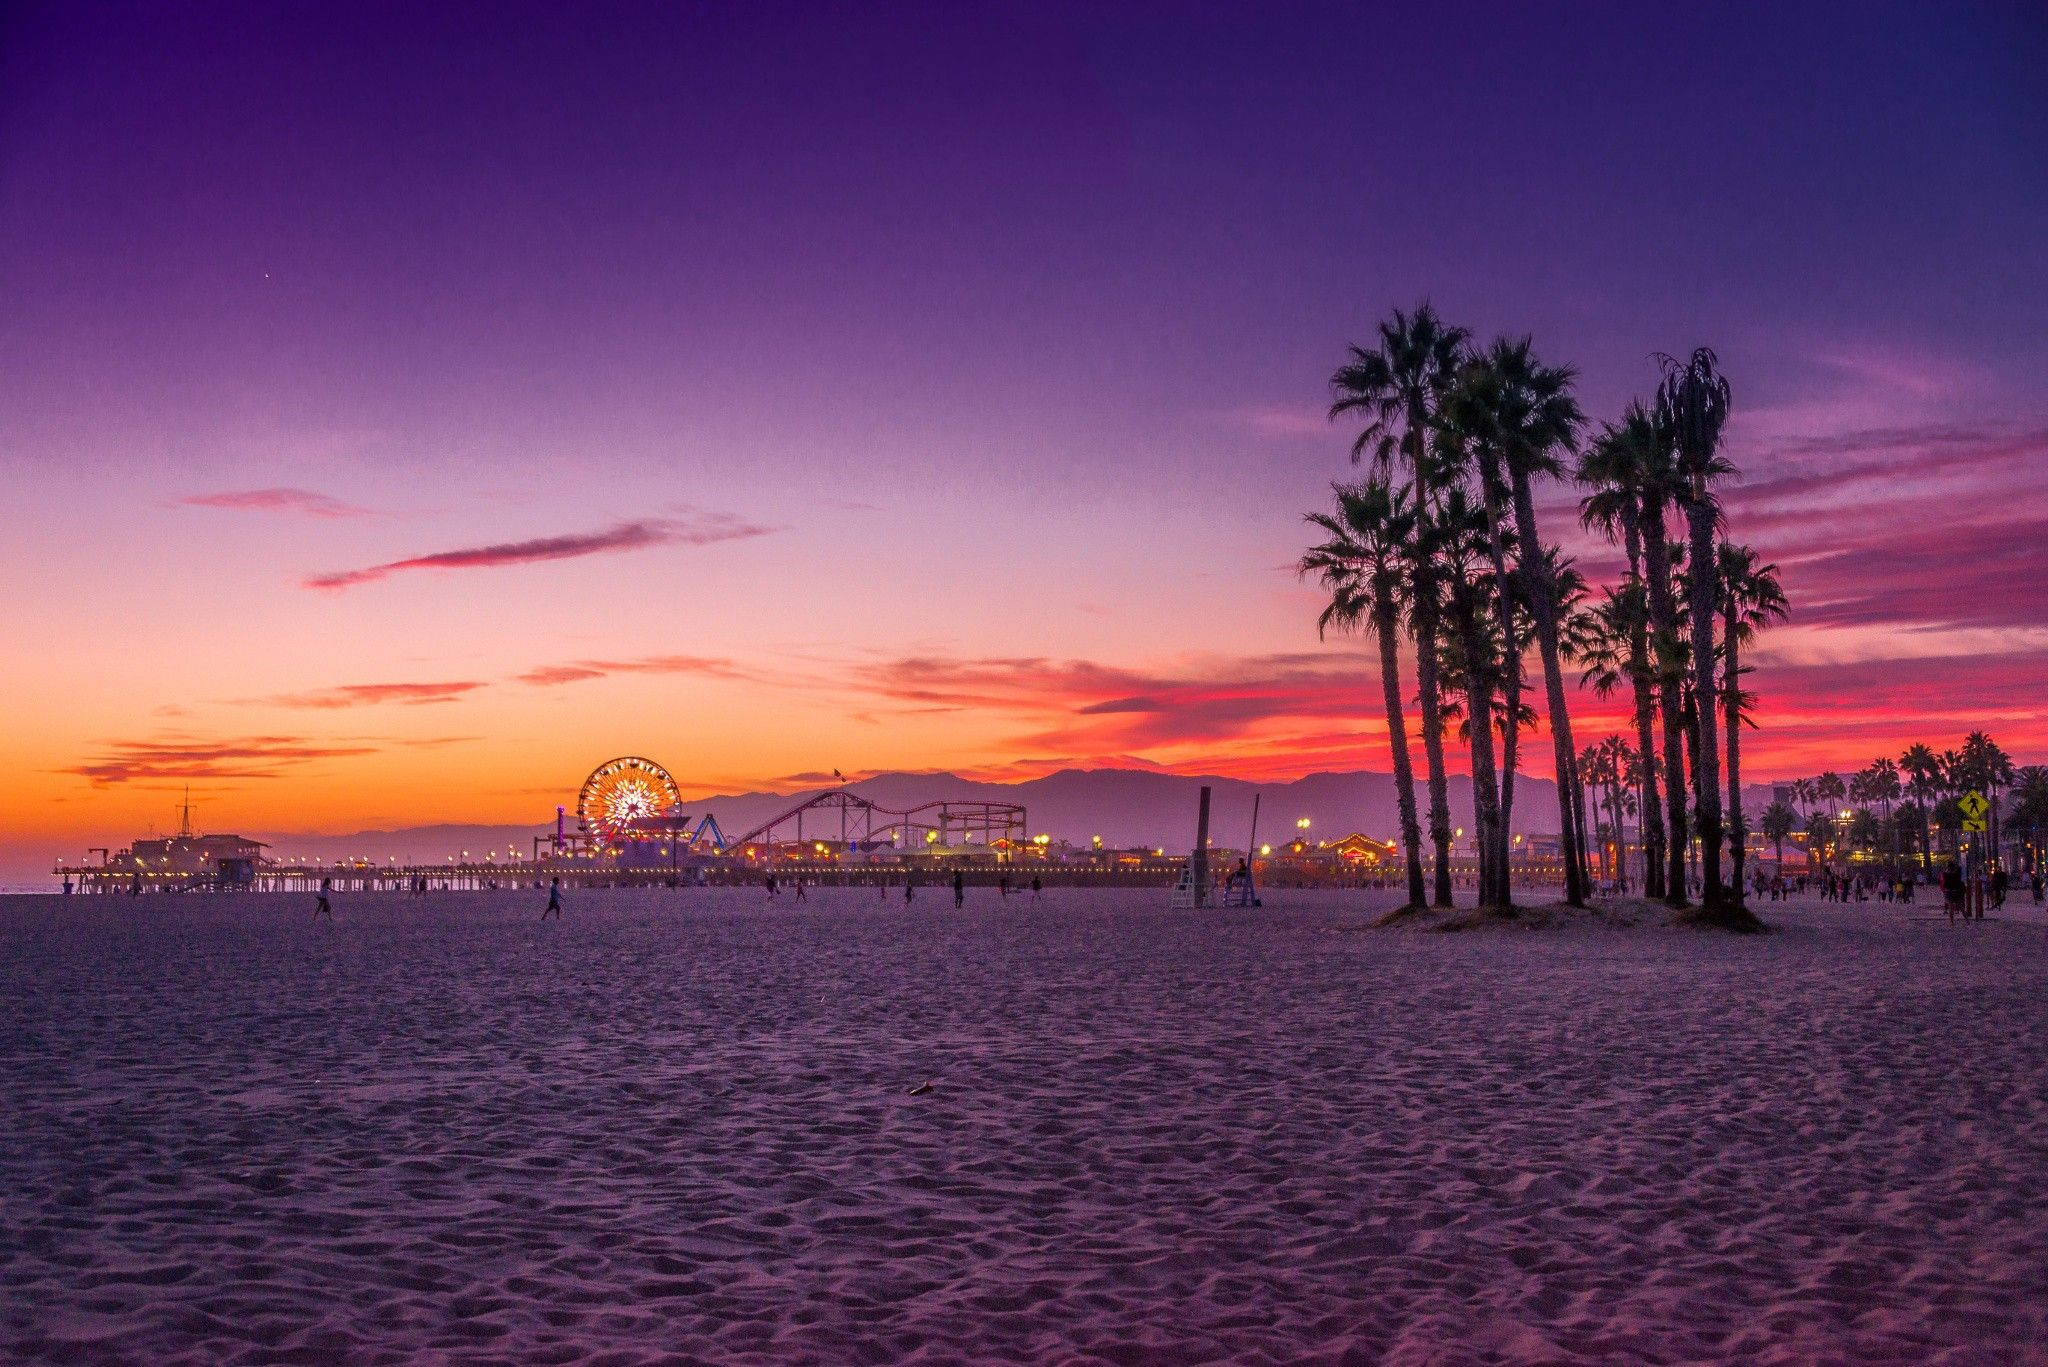 60 Venice Beach Sunset Wallpapers   Download at WallpaperBro 2048x1367